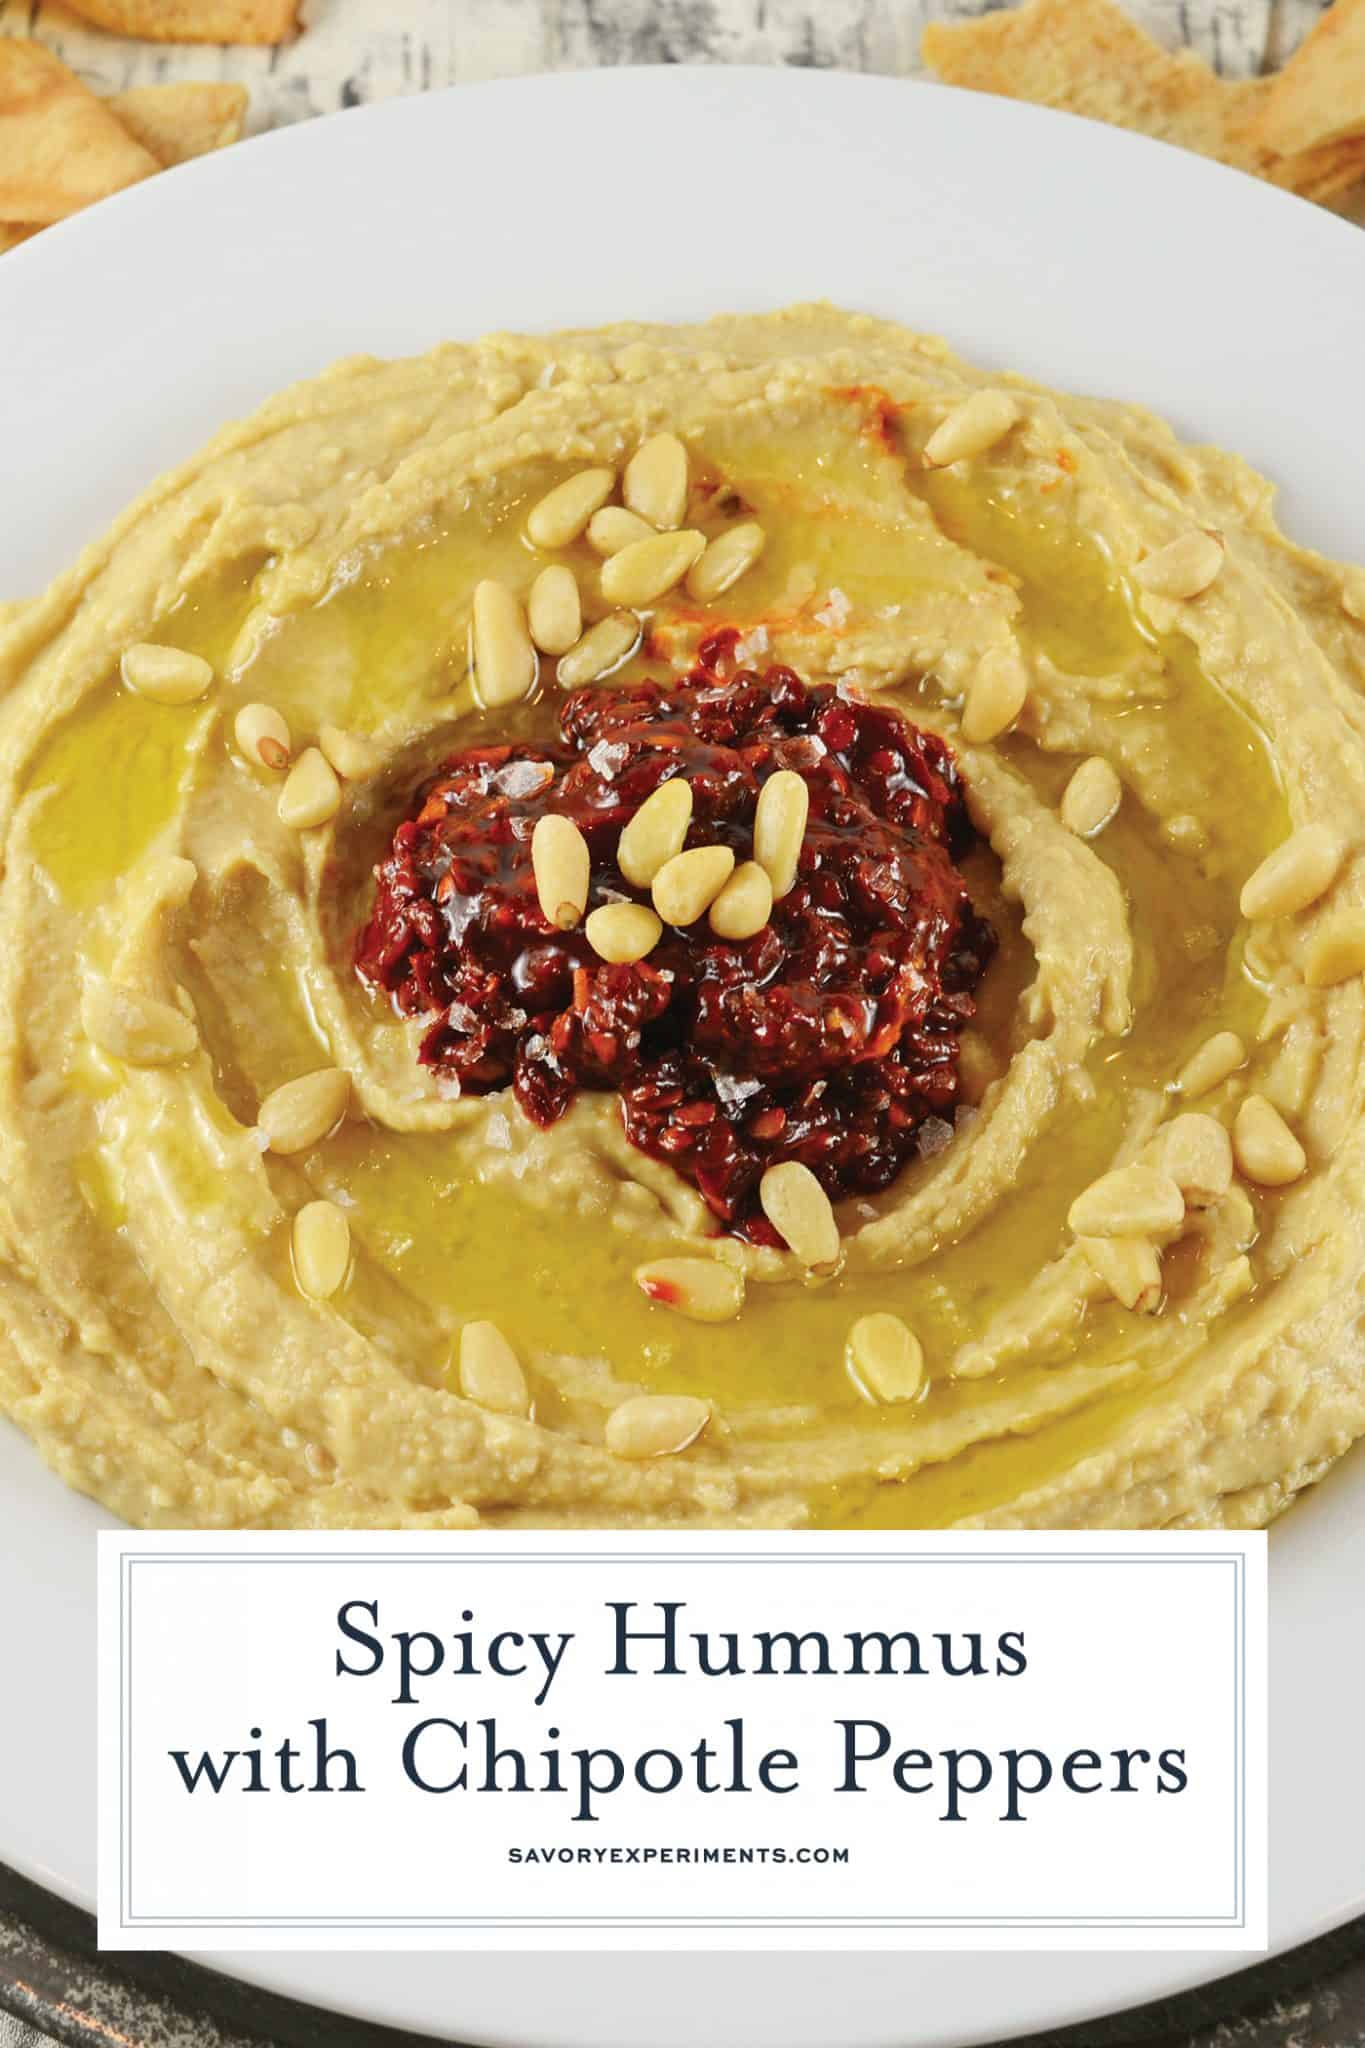 Spicy Hummus with Chipotle Peppers is a spicy homemade hummus recipe. This is the best hummus recipes to make because it is so easy and it stores great! #besthummusrecipe #homemadehummus #howtomakehummus www.savoryexperiments.com